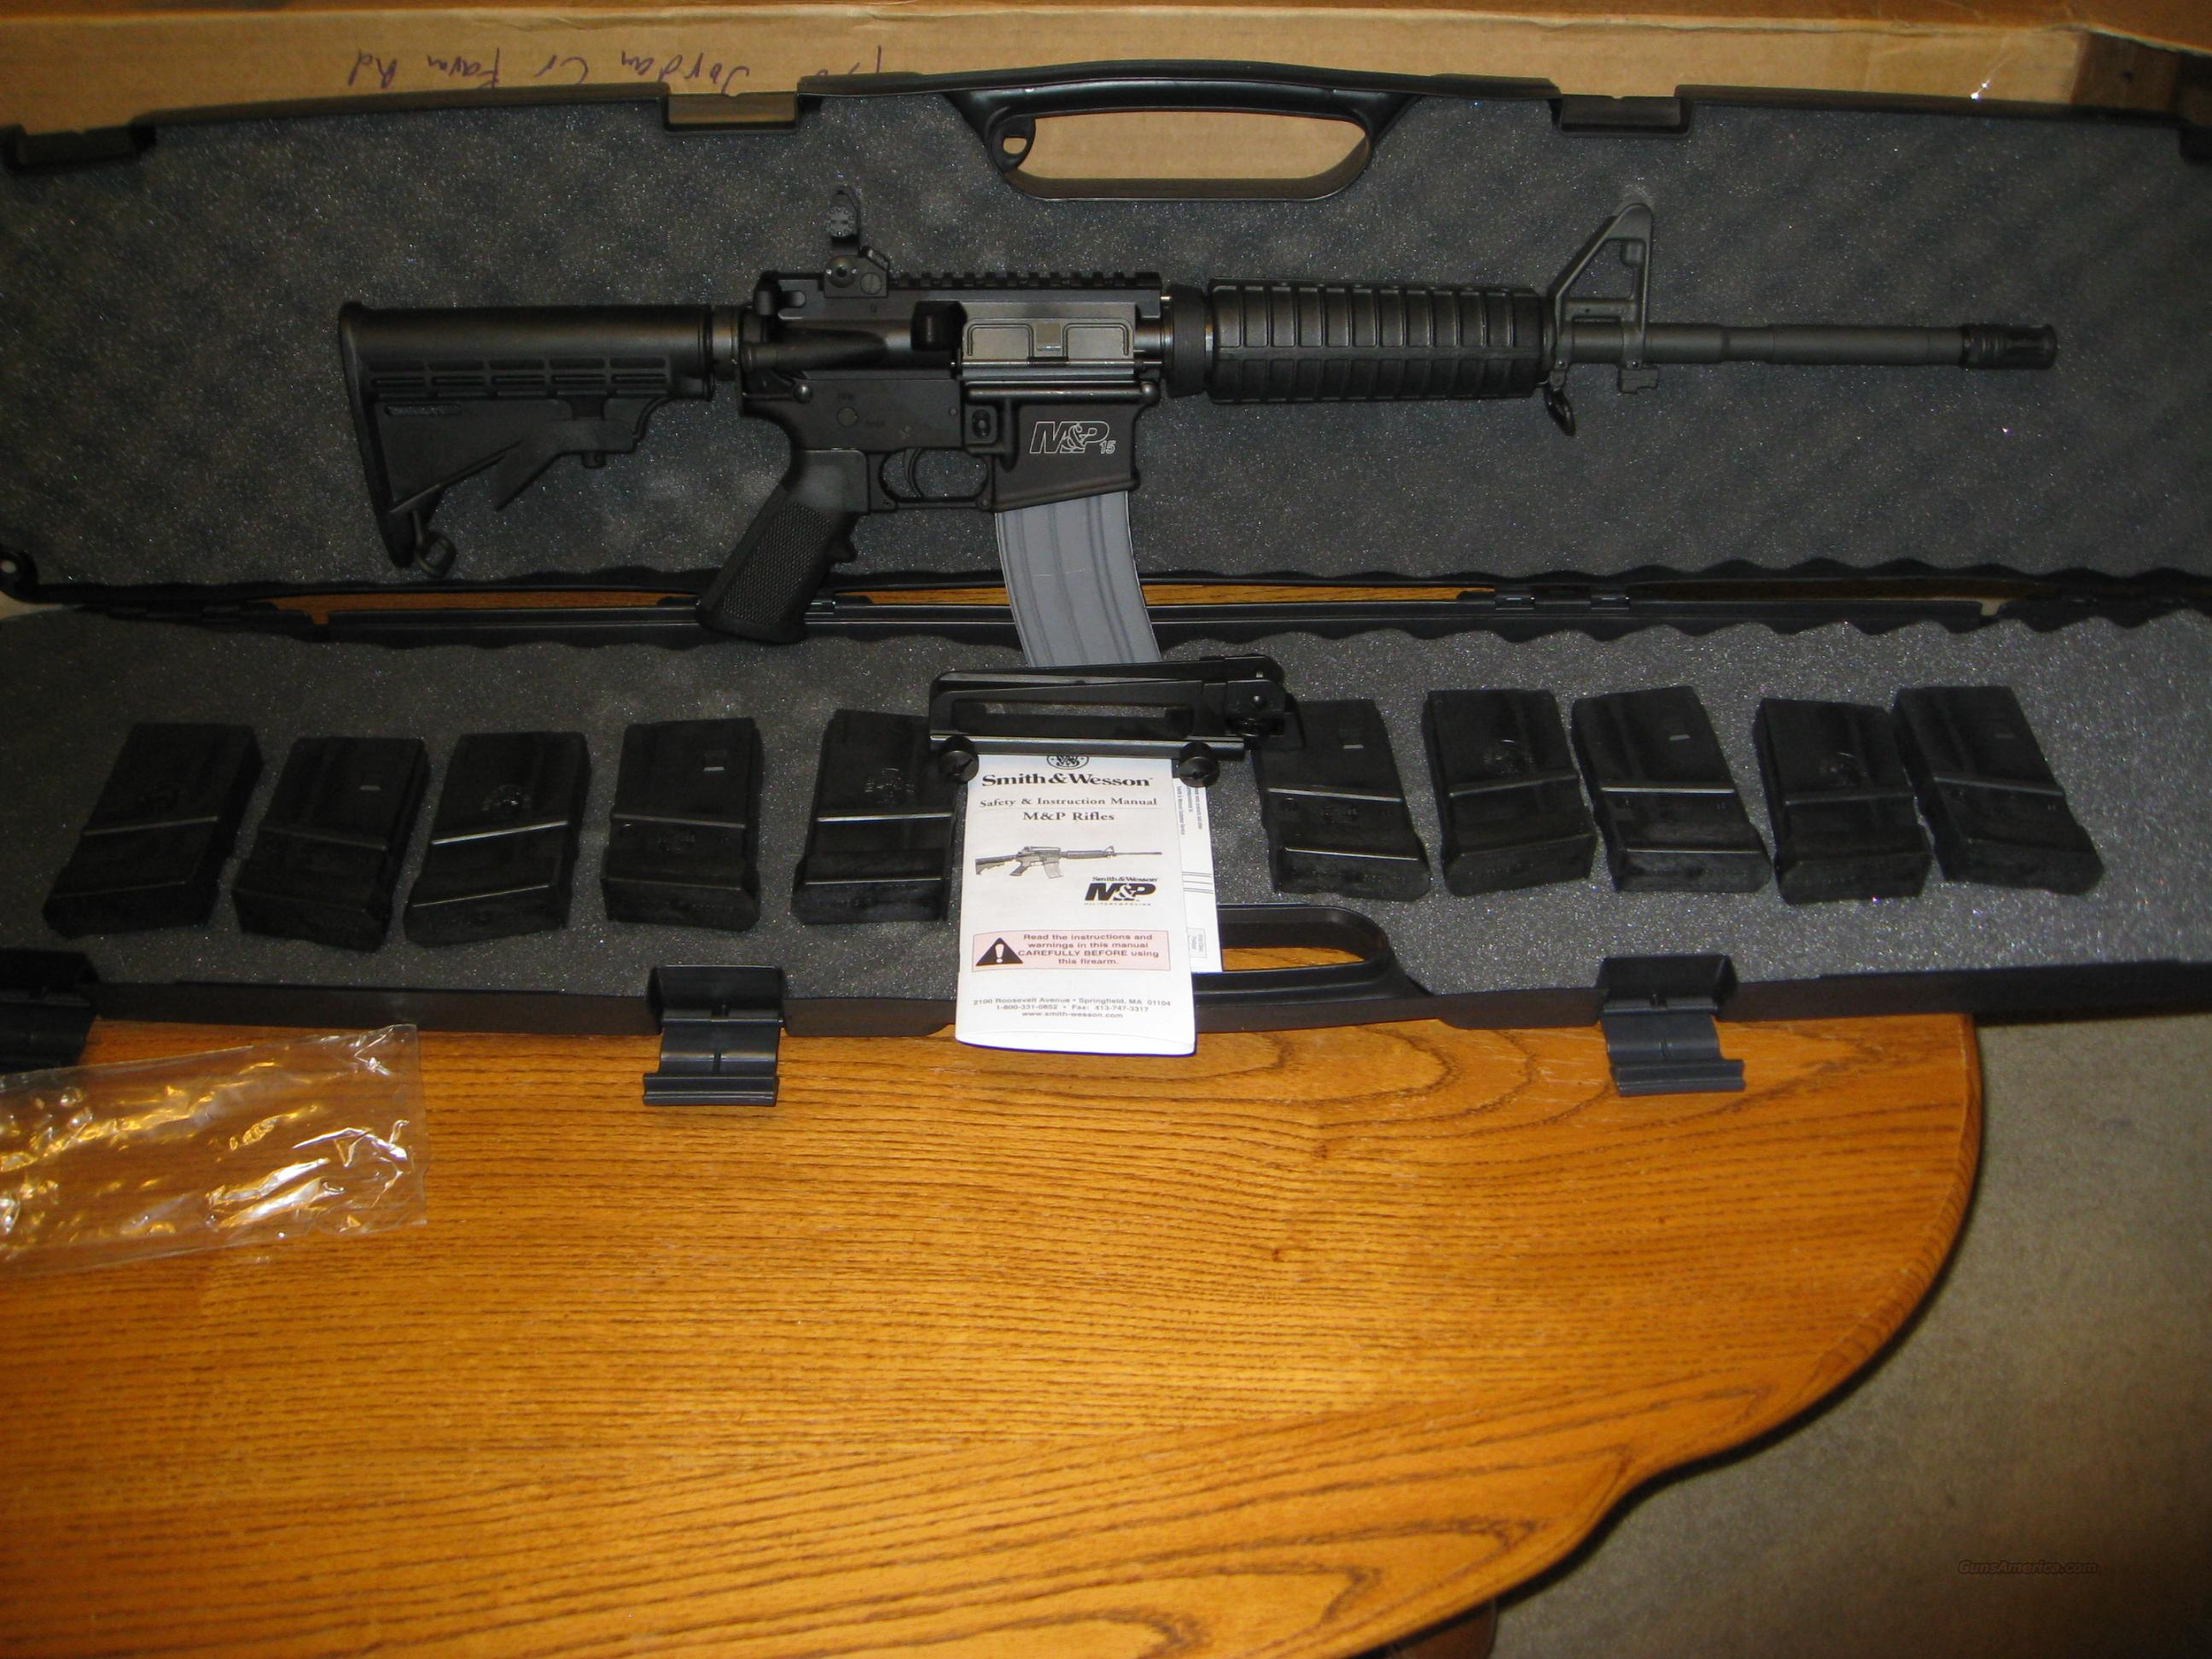 Smith and Wesson M&P-15A .223/5.56mm Nato AR-15  Guns > Rifles > Smith & Wesson Rifles > M&P